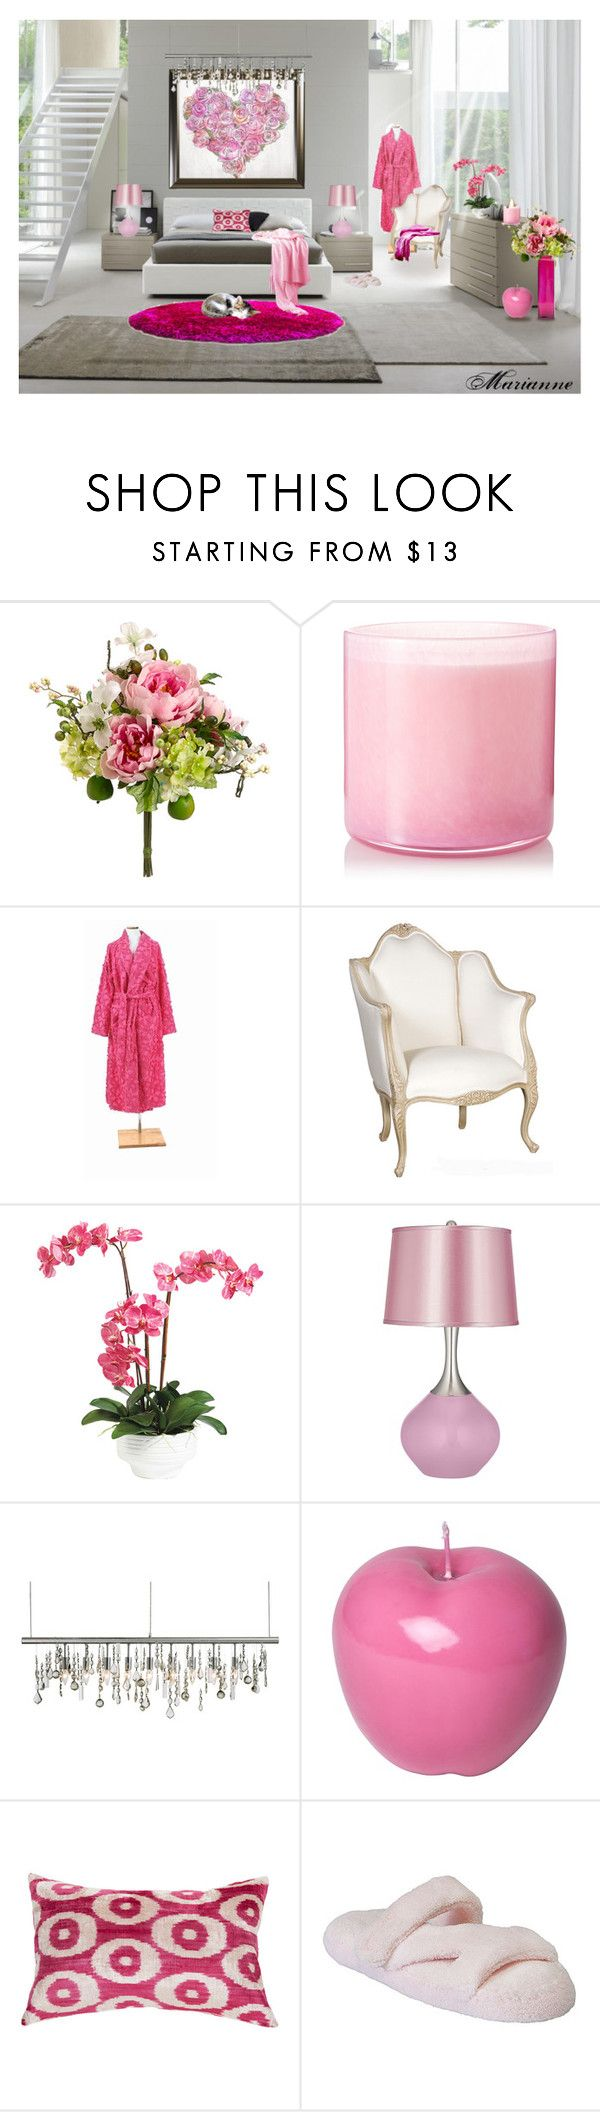 """Home 6"" by marianne-spiessens on Polyvore featuring interior, interiors, interior design, home, home decor, interior decorating, Oliver Gal Artist Co., LAFCO, Pine Cone Hill and Market"